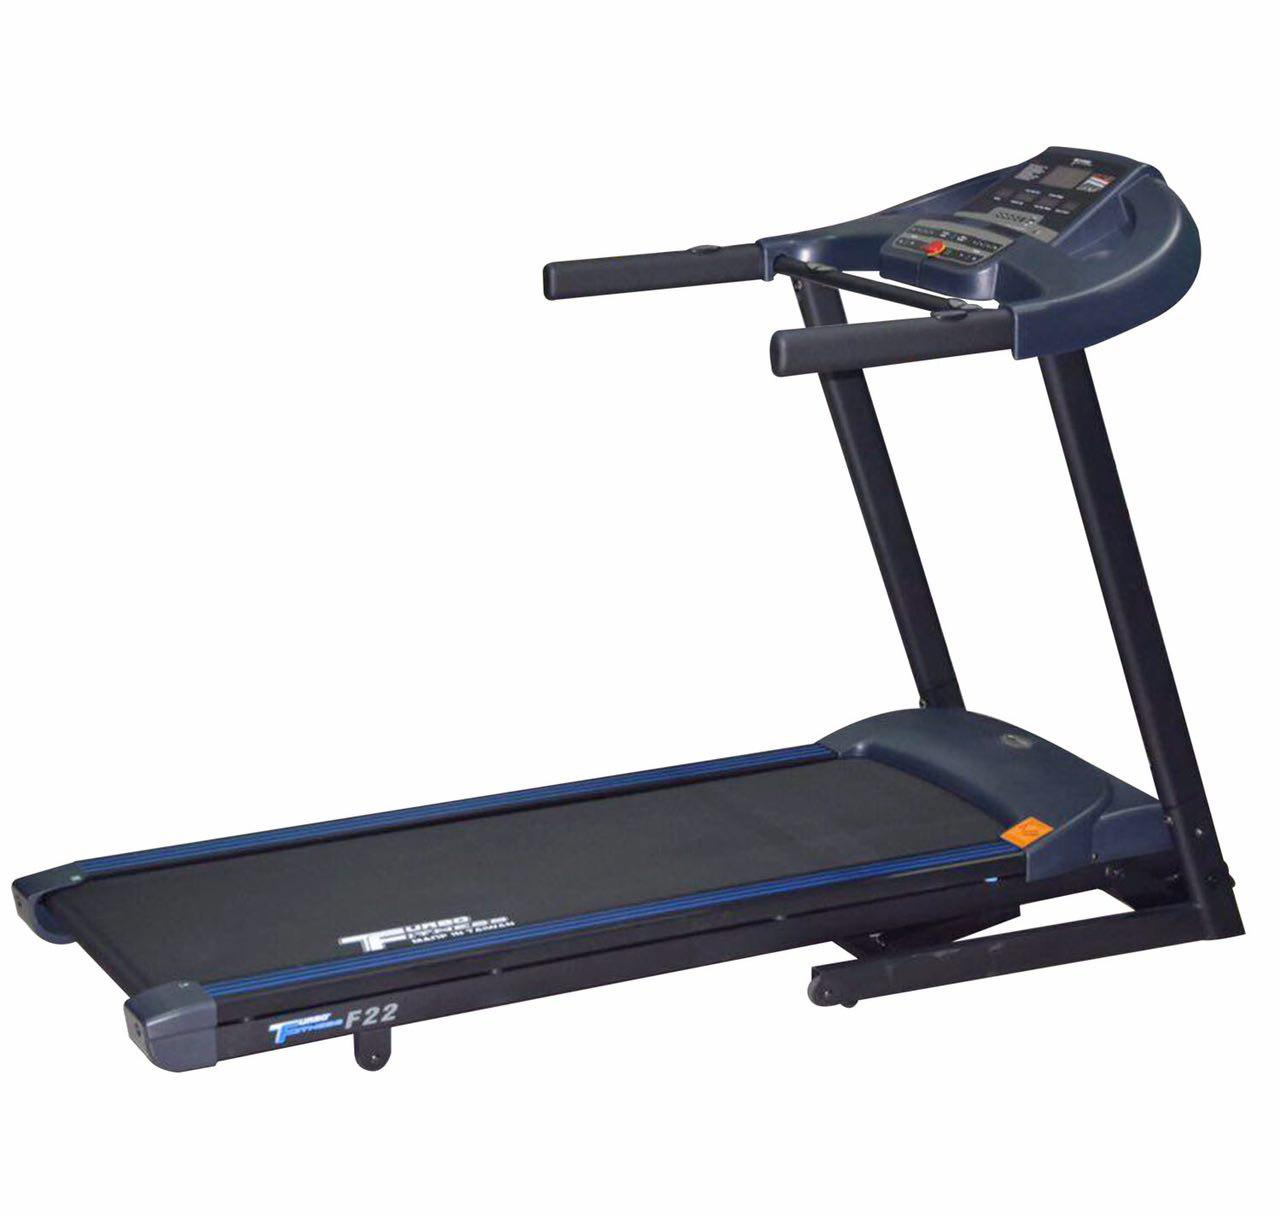 Turbo Fitness F22 Treadmills